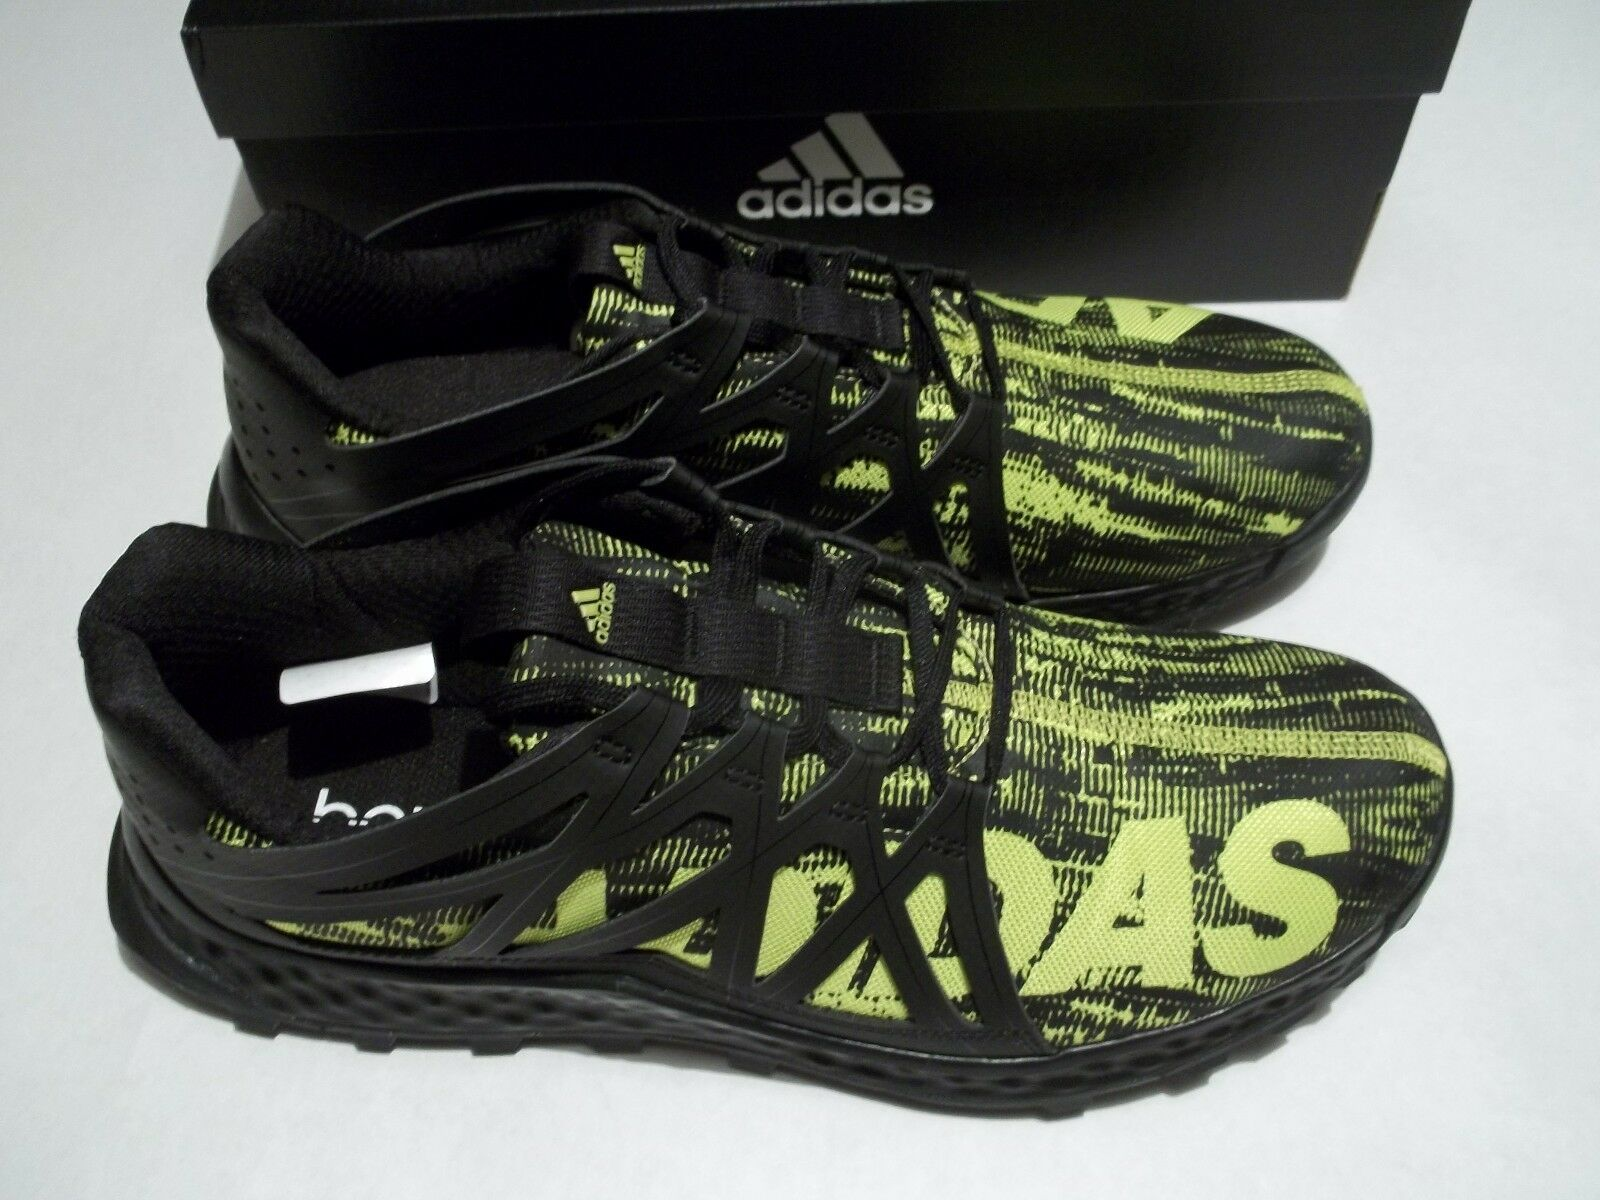 New In Box Adidas Vigor Bounce M Men's Size 13 shoes Black Yellow BB8380